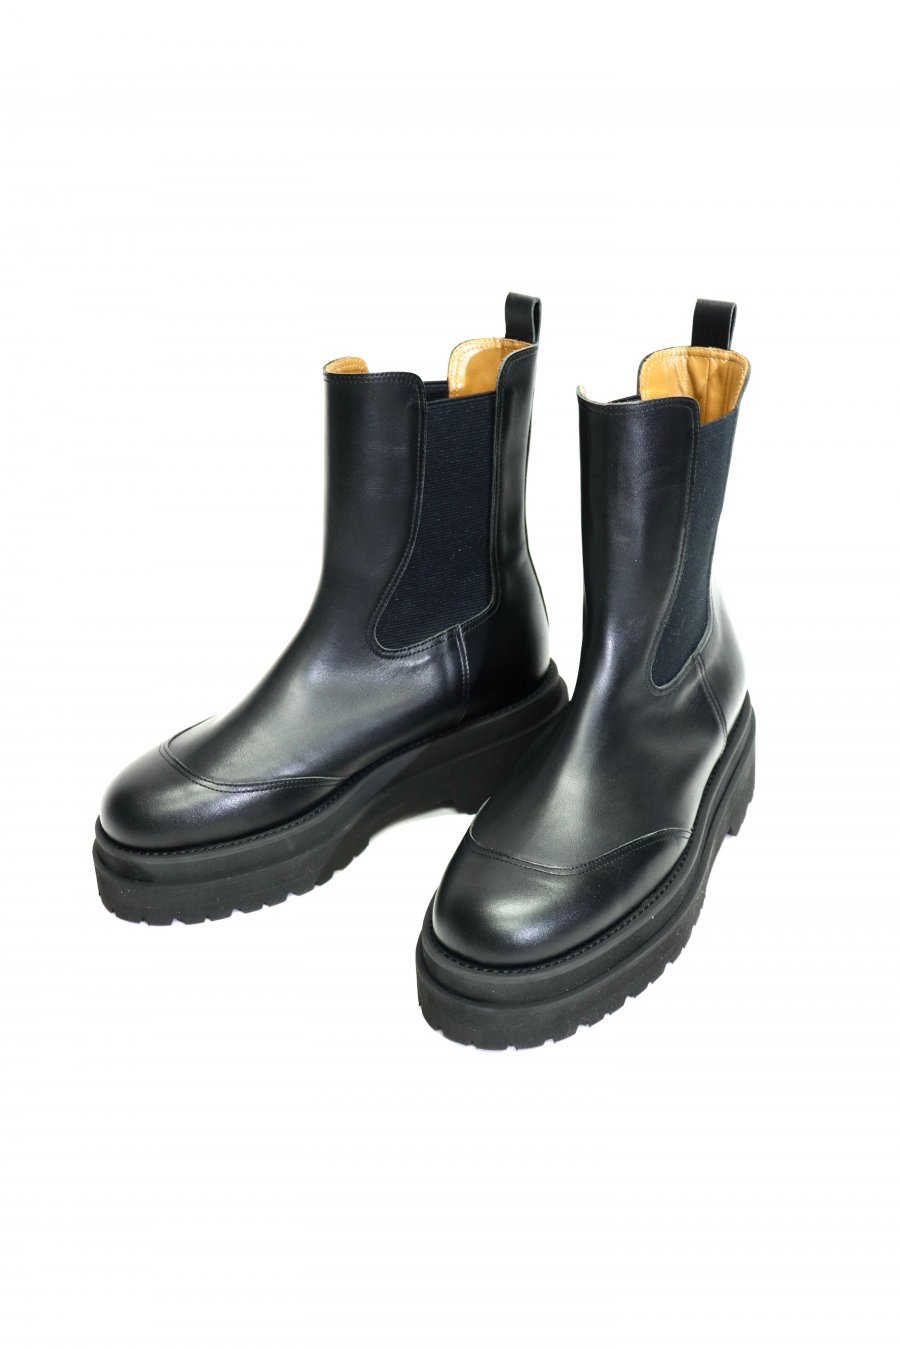 JOHN MASON SMITH  SIDE GORE BOOTS<img class='new_mark_img2' src='https://img.shop-pro.jp/img/new/icons15.gif' style='border:none;display:inline;margin:0px;padding:0px;width:auto;' />